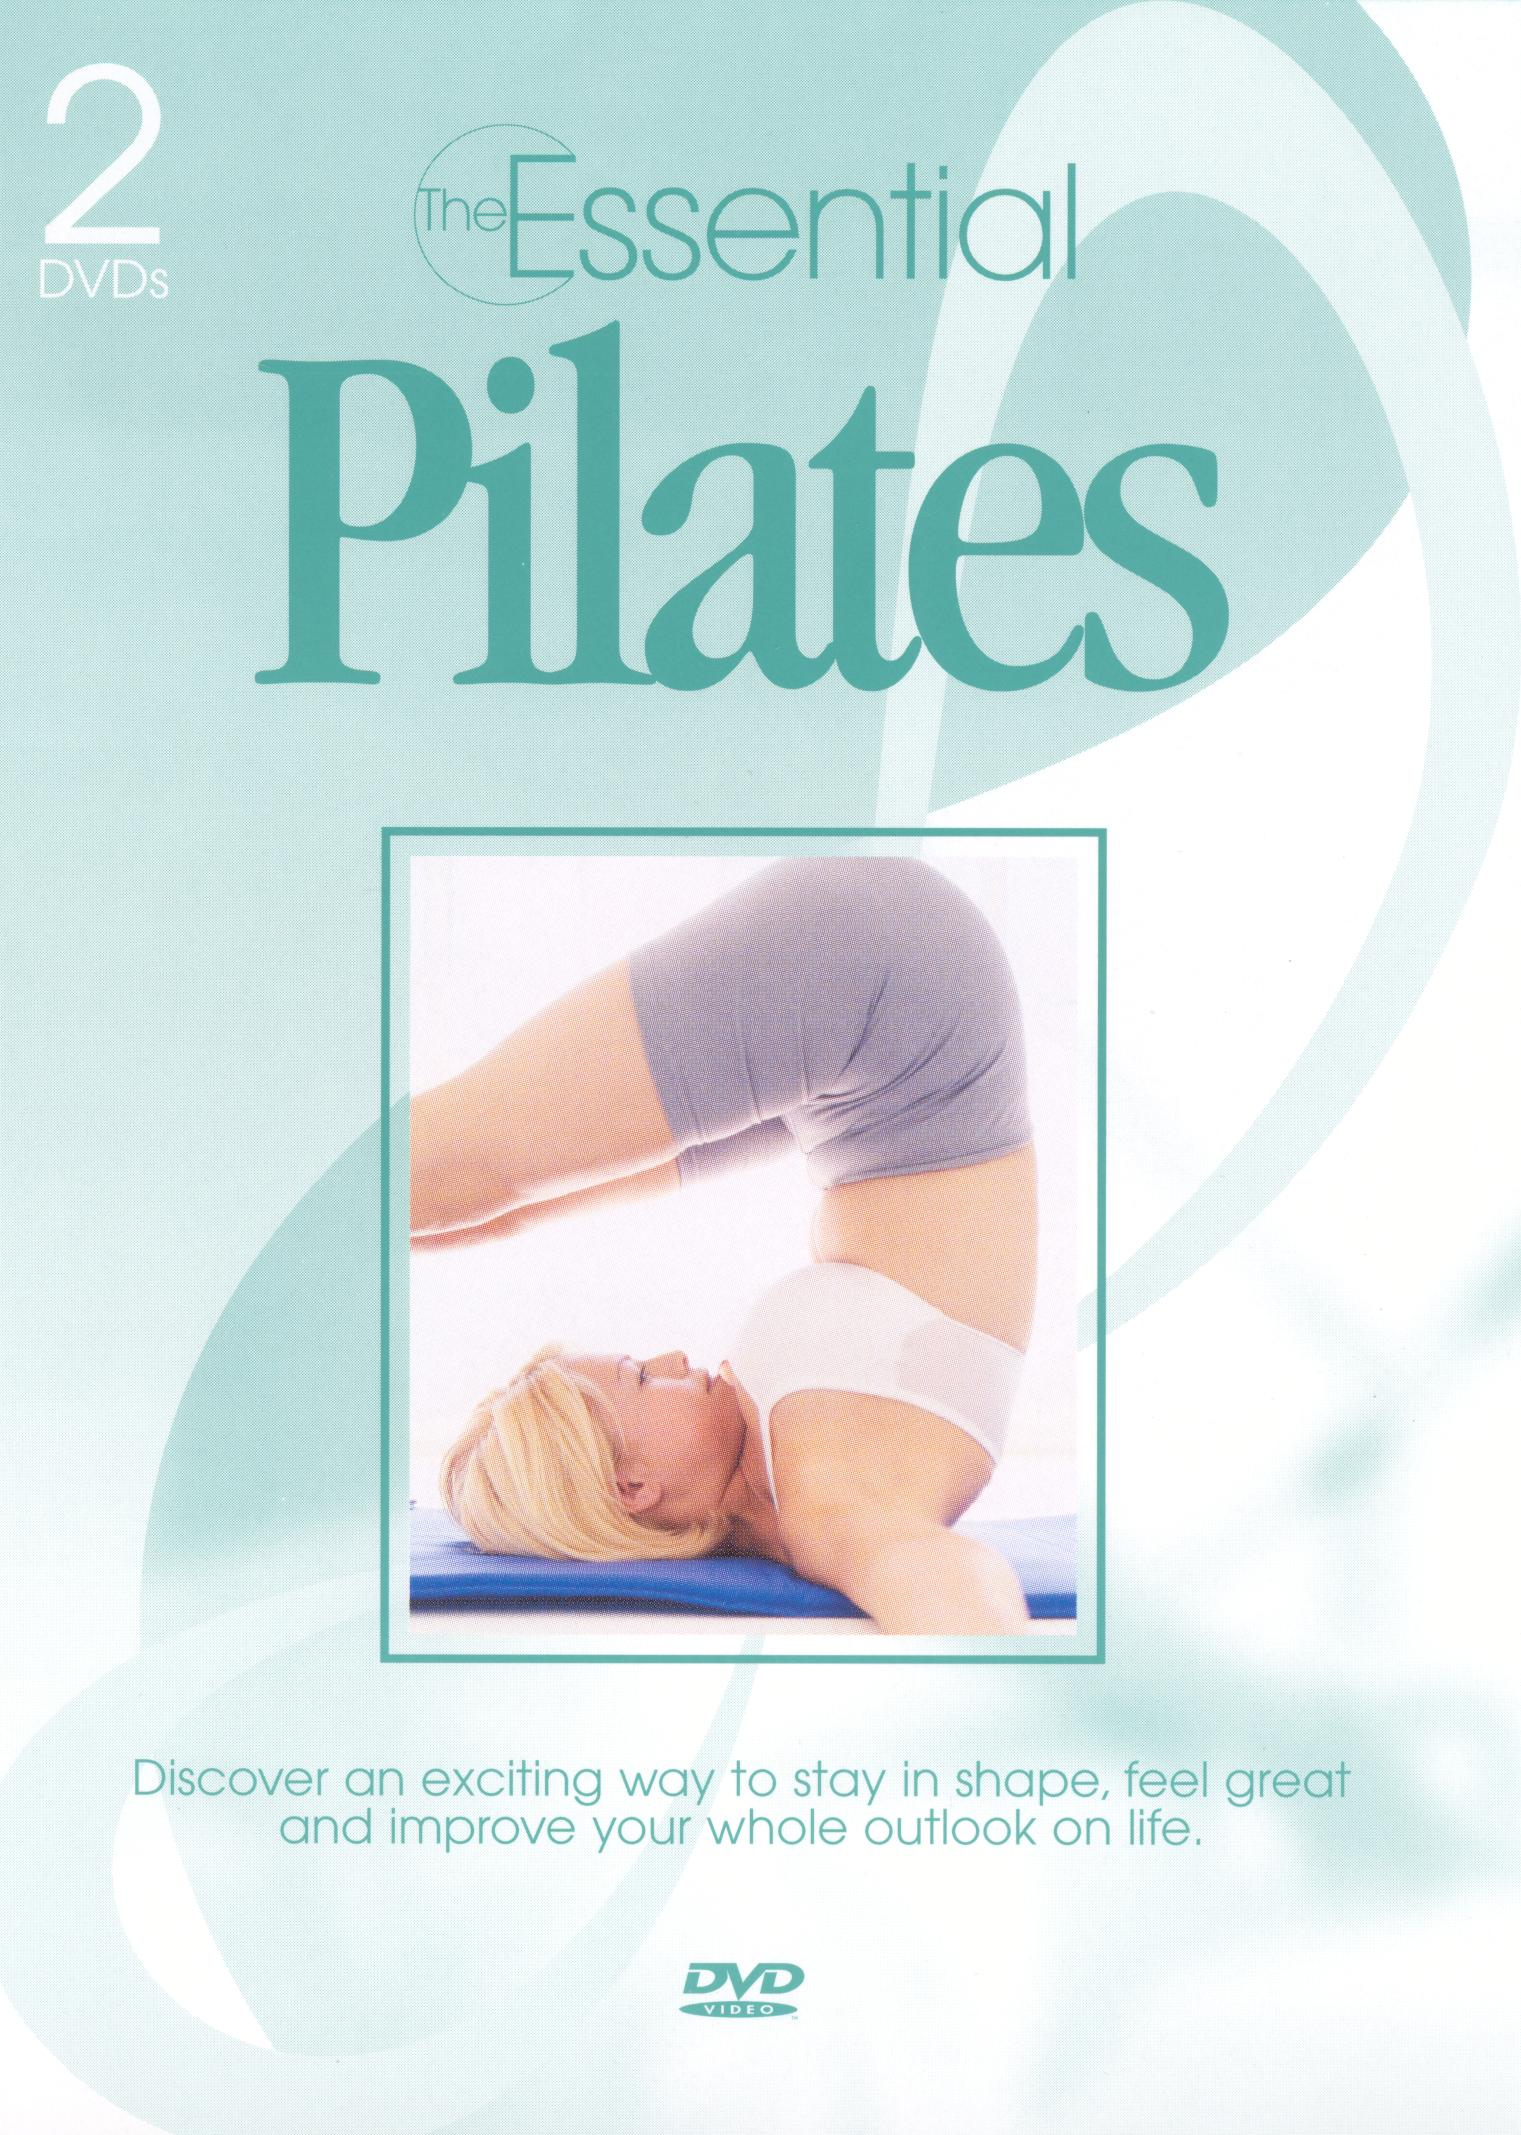 The Essential Pilates